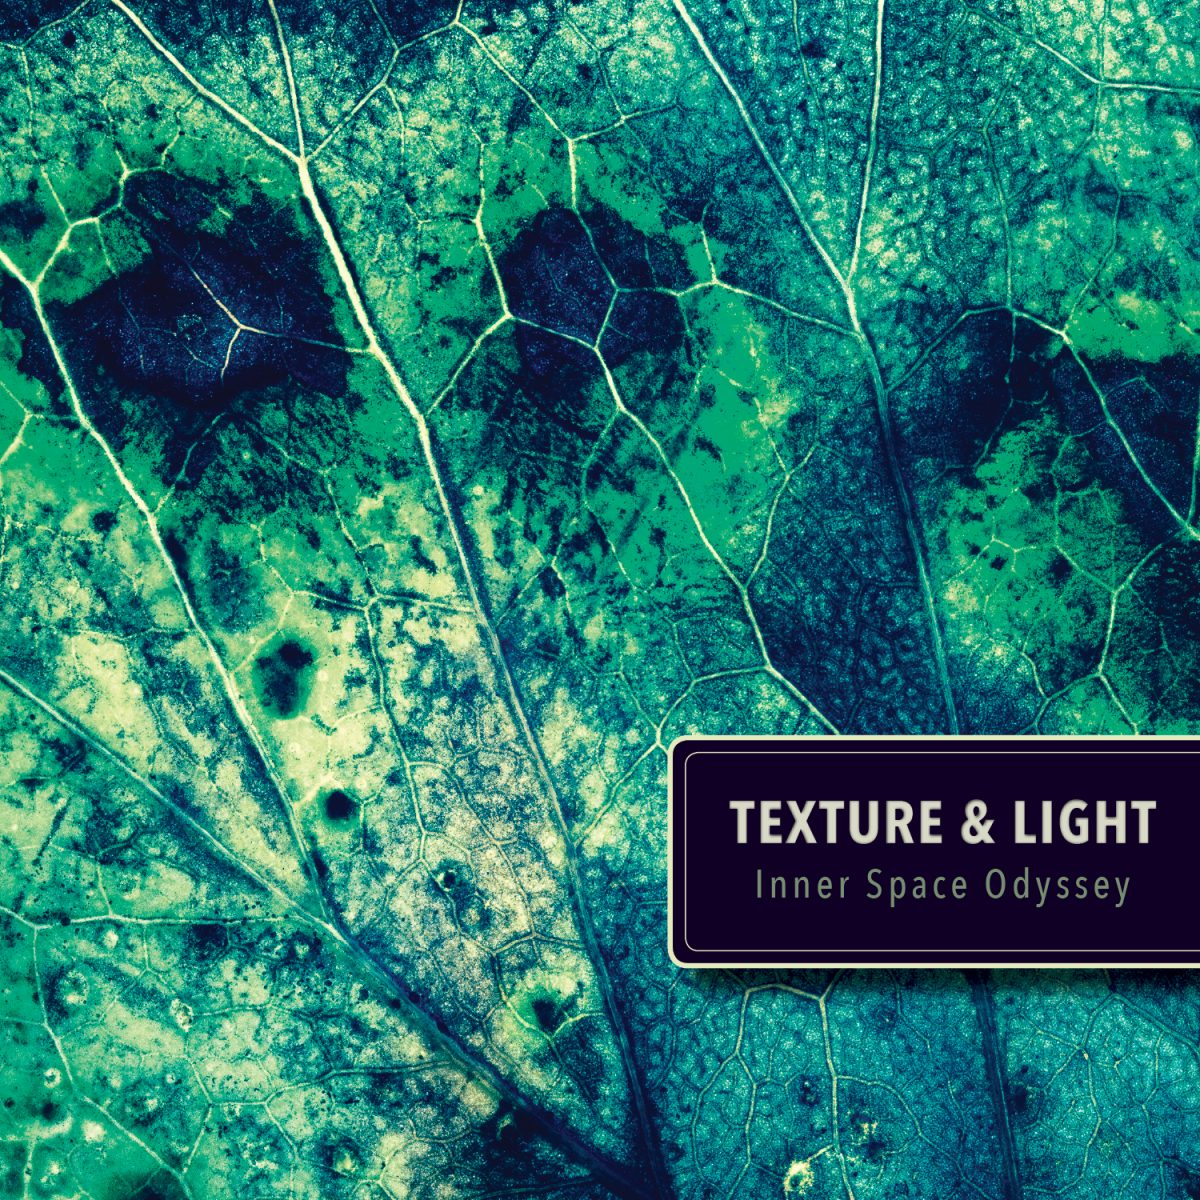 Texture & Light - Inner Space Odyssey